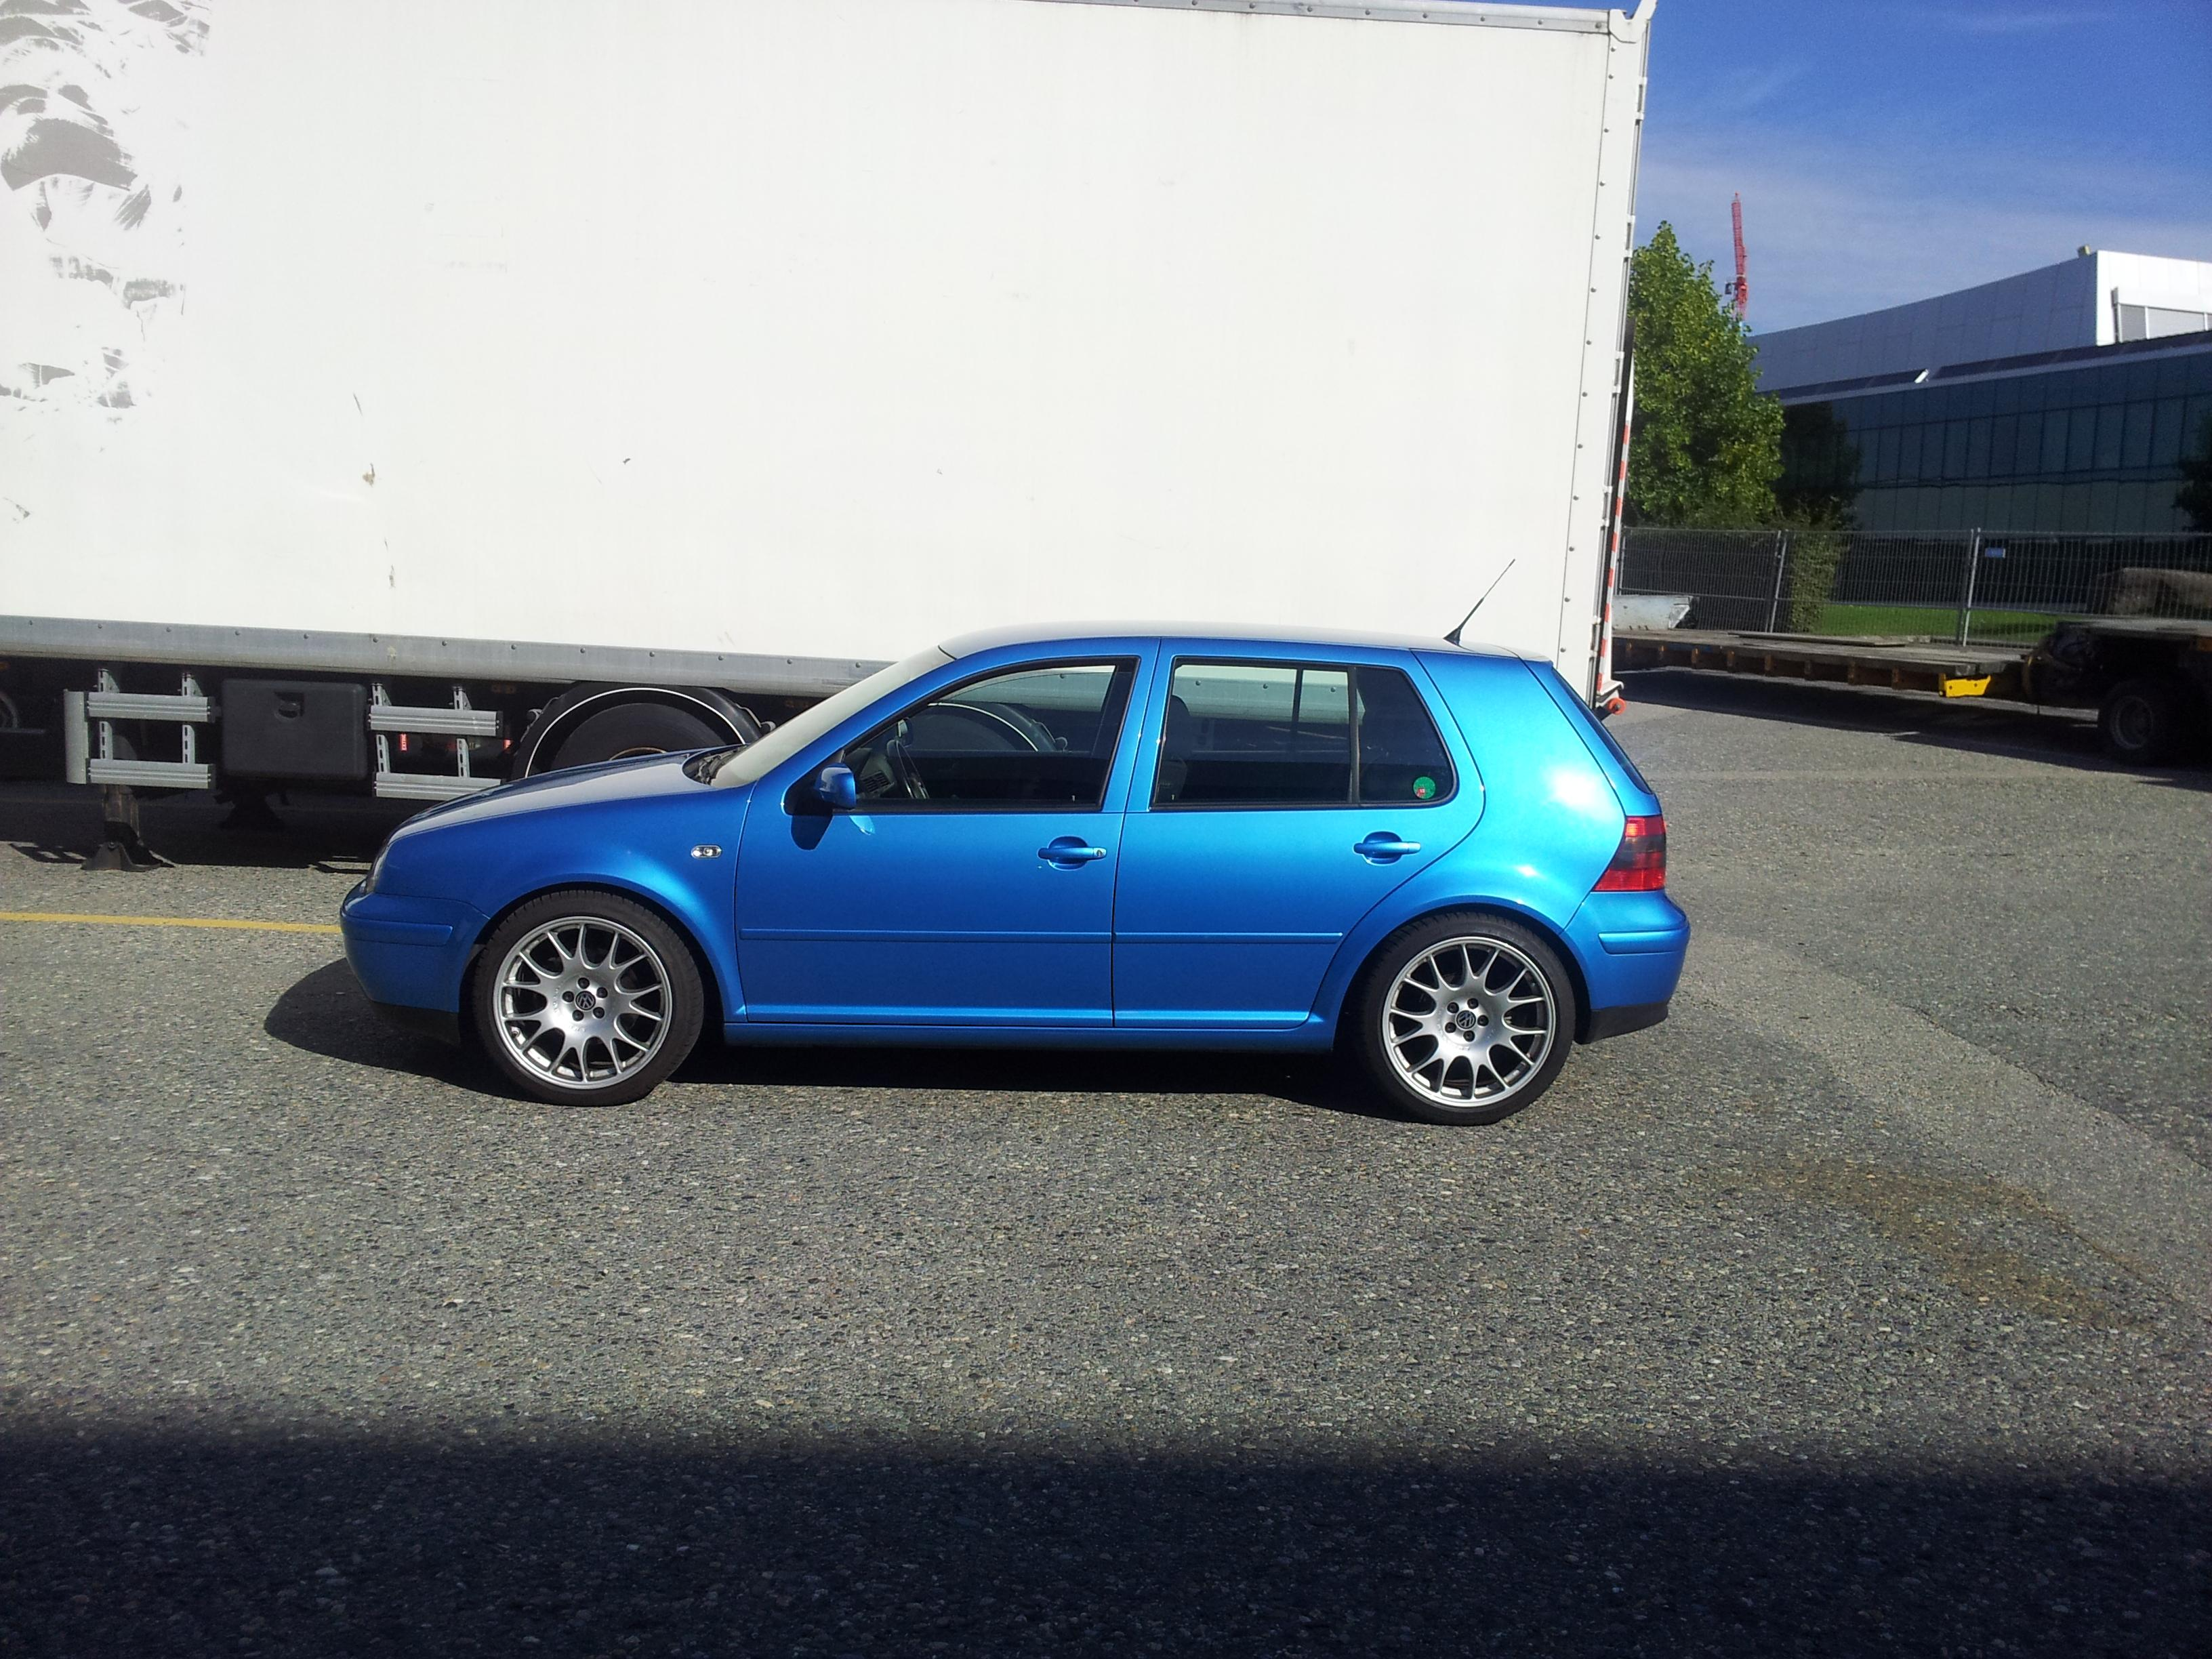 avis sur bilstein b10 vs b4 trains roulants forum volkswagen golf iv. Black Bedroom Furniture Sets. Home Design Ideas